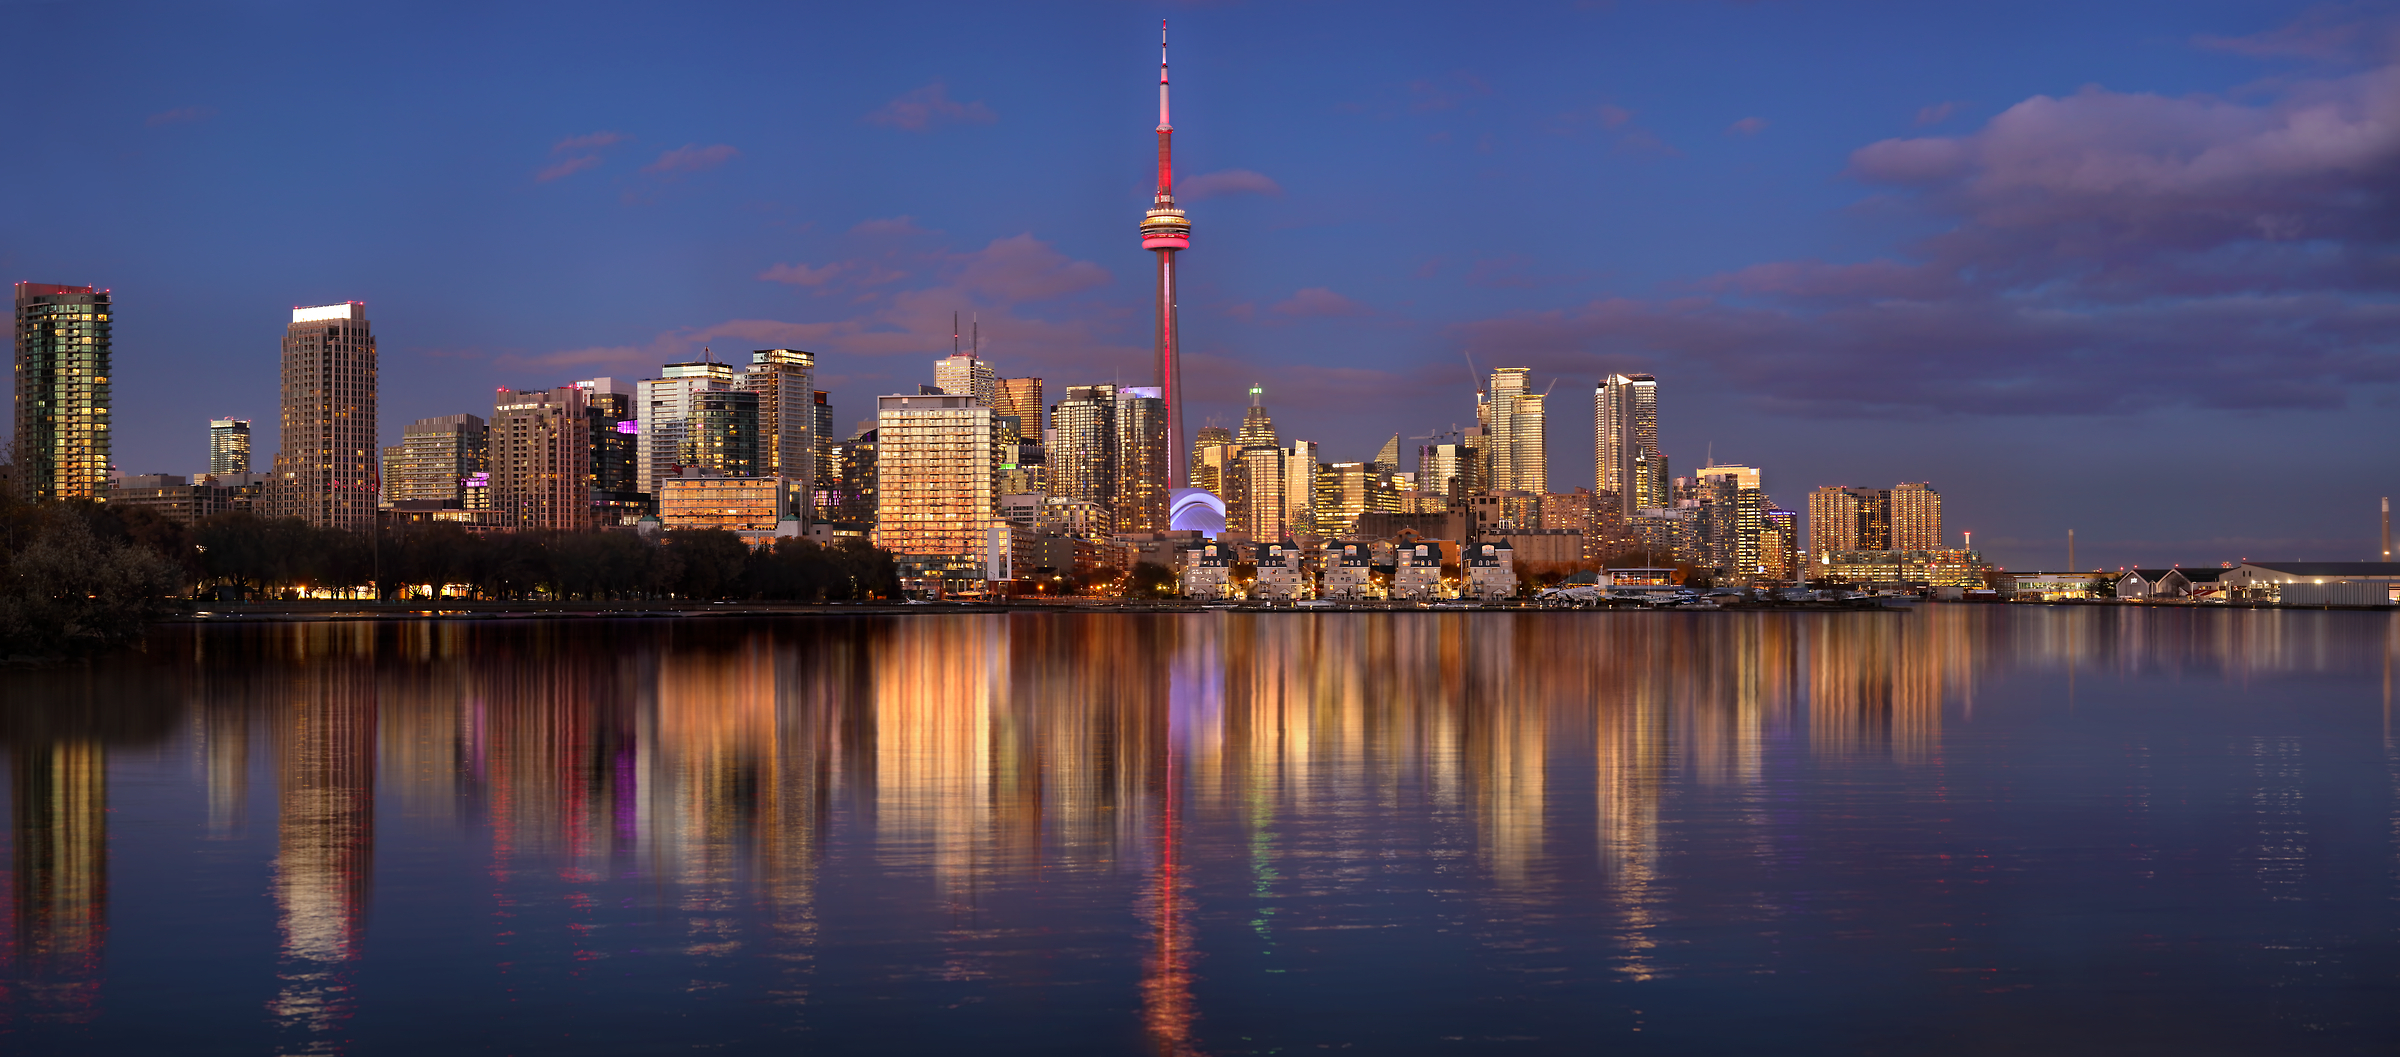 533 megapixels! A very high resolution, large-format VAST photo print of the Toronto skyline at dusk with Lake Ontario in the foreground; cityscape photograph created by Phil Crawshay in Downtown Toronto, Ontario, Canada